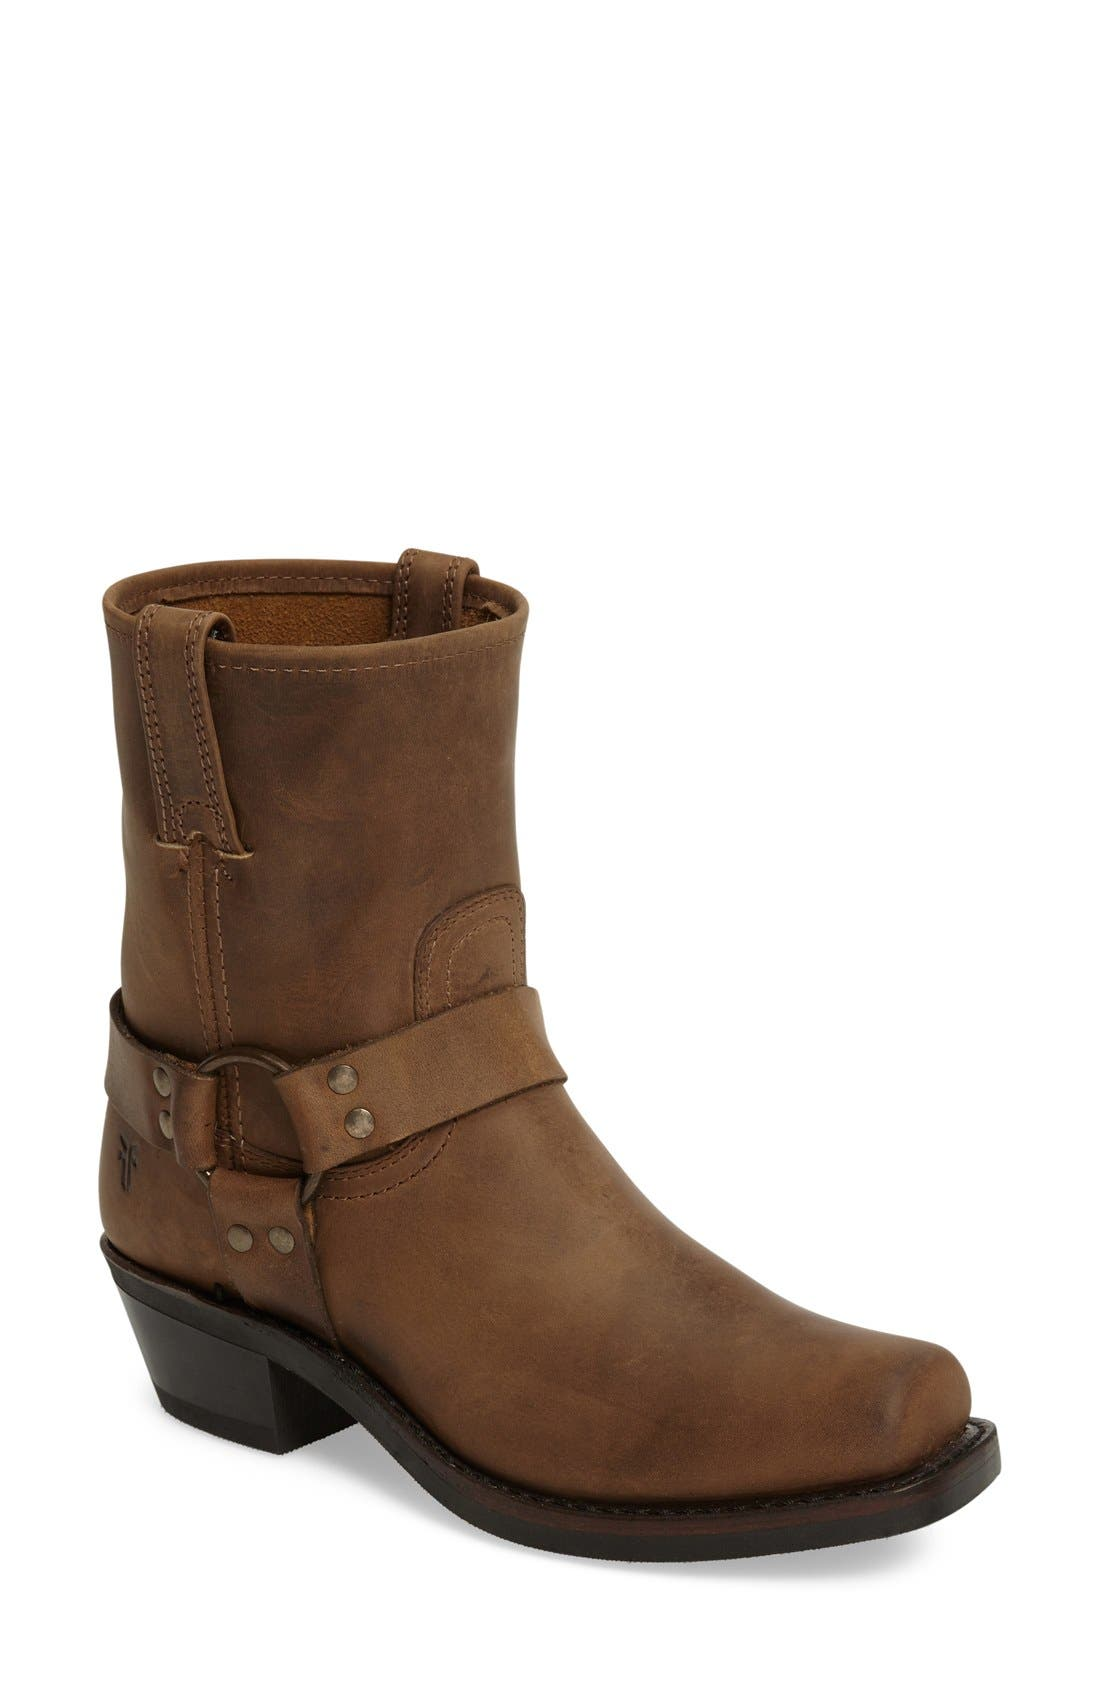 HARNESS SQUARE TOE ENGINEER BOOT